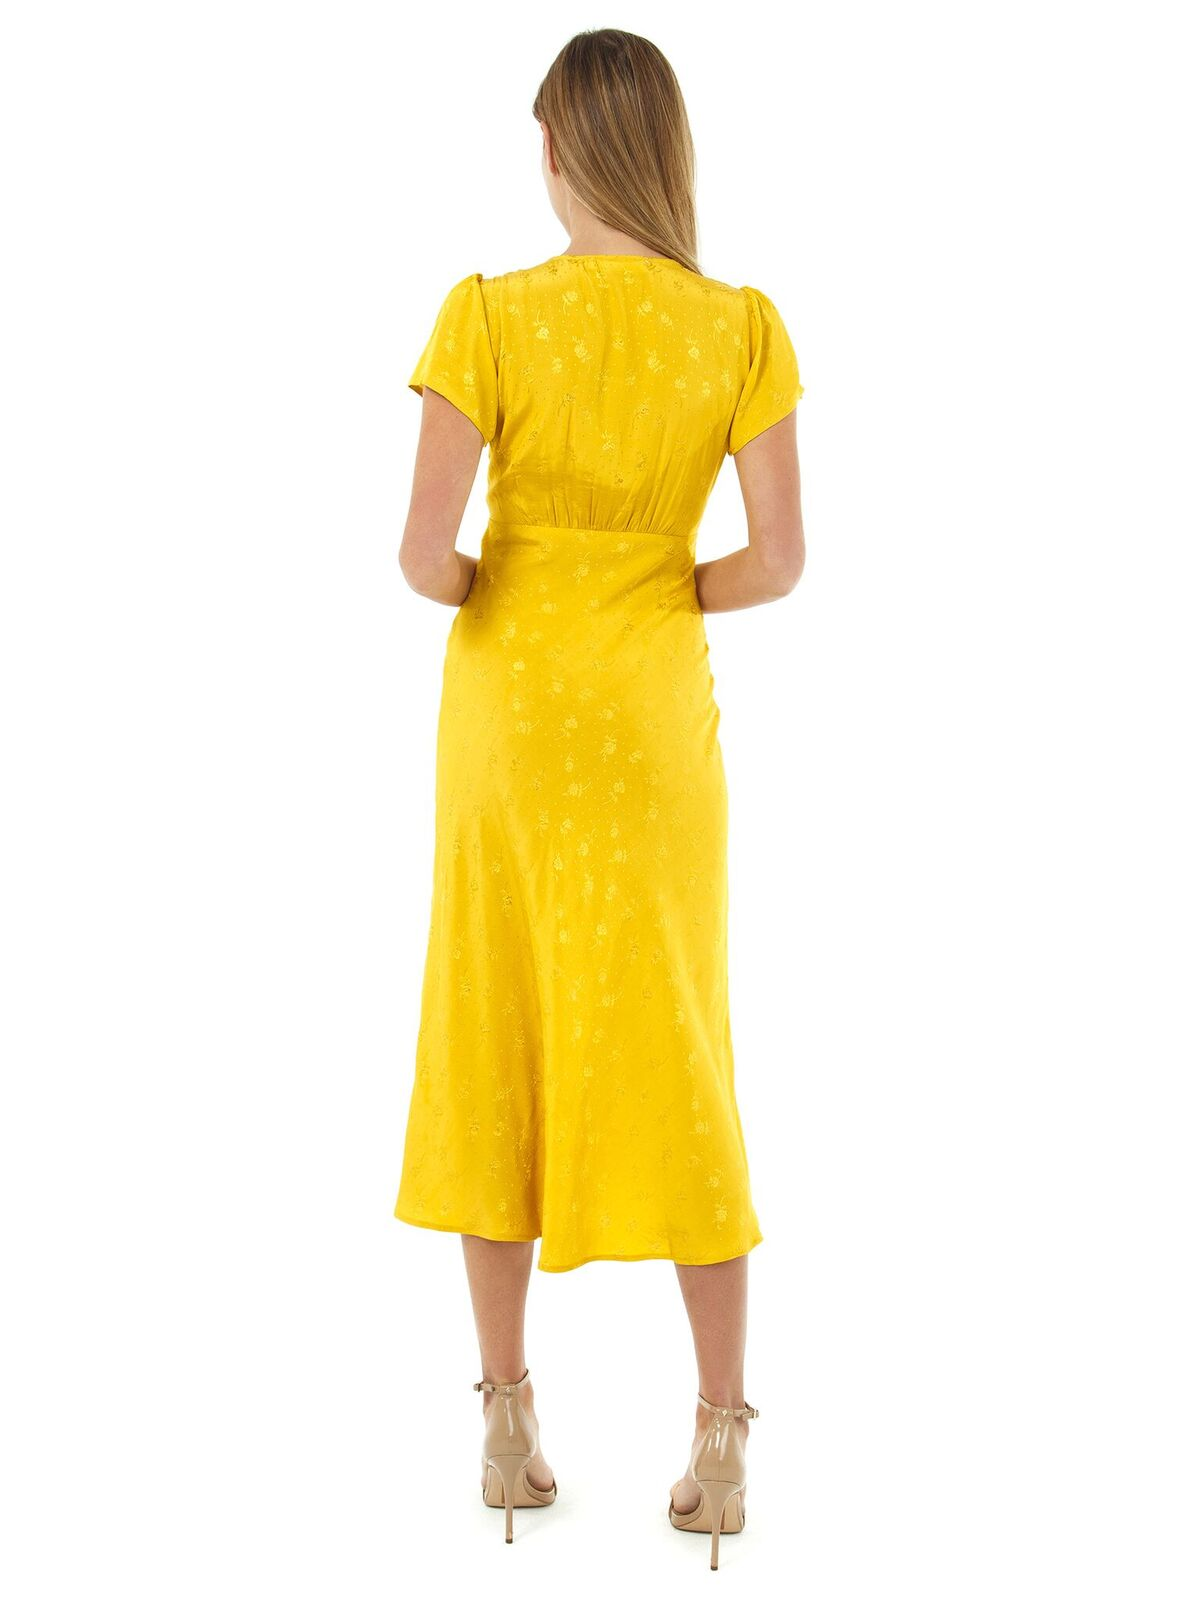 Women wearing a dress rental from ASTR called Serendipity Front Tie Midi Dress